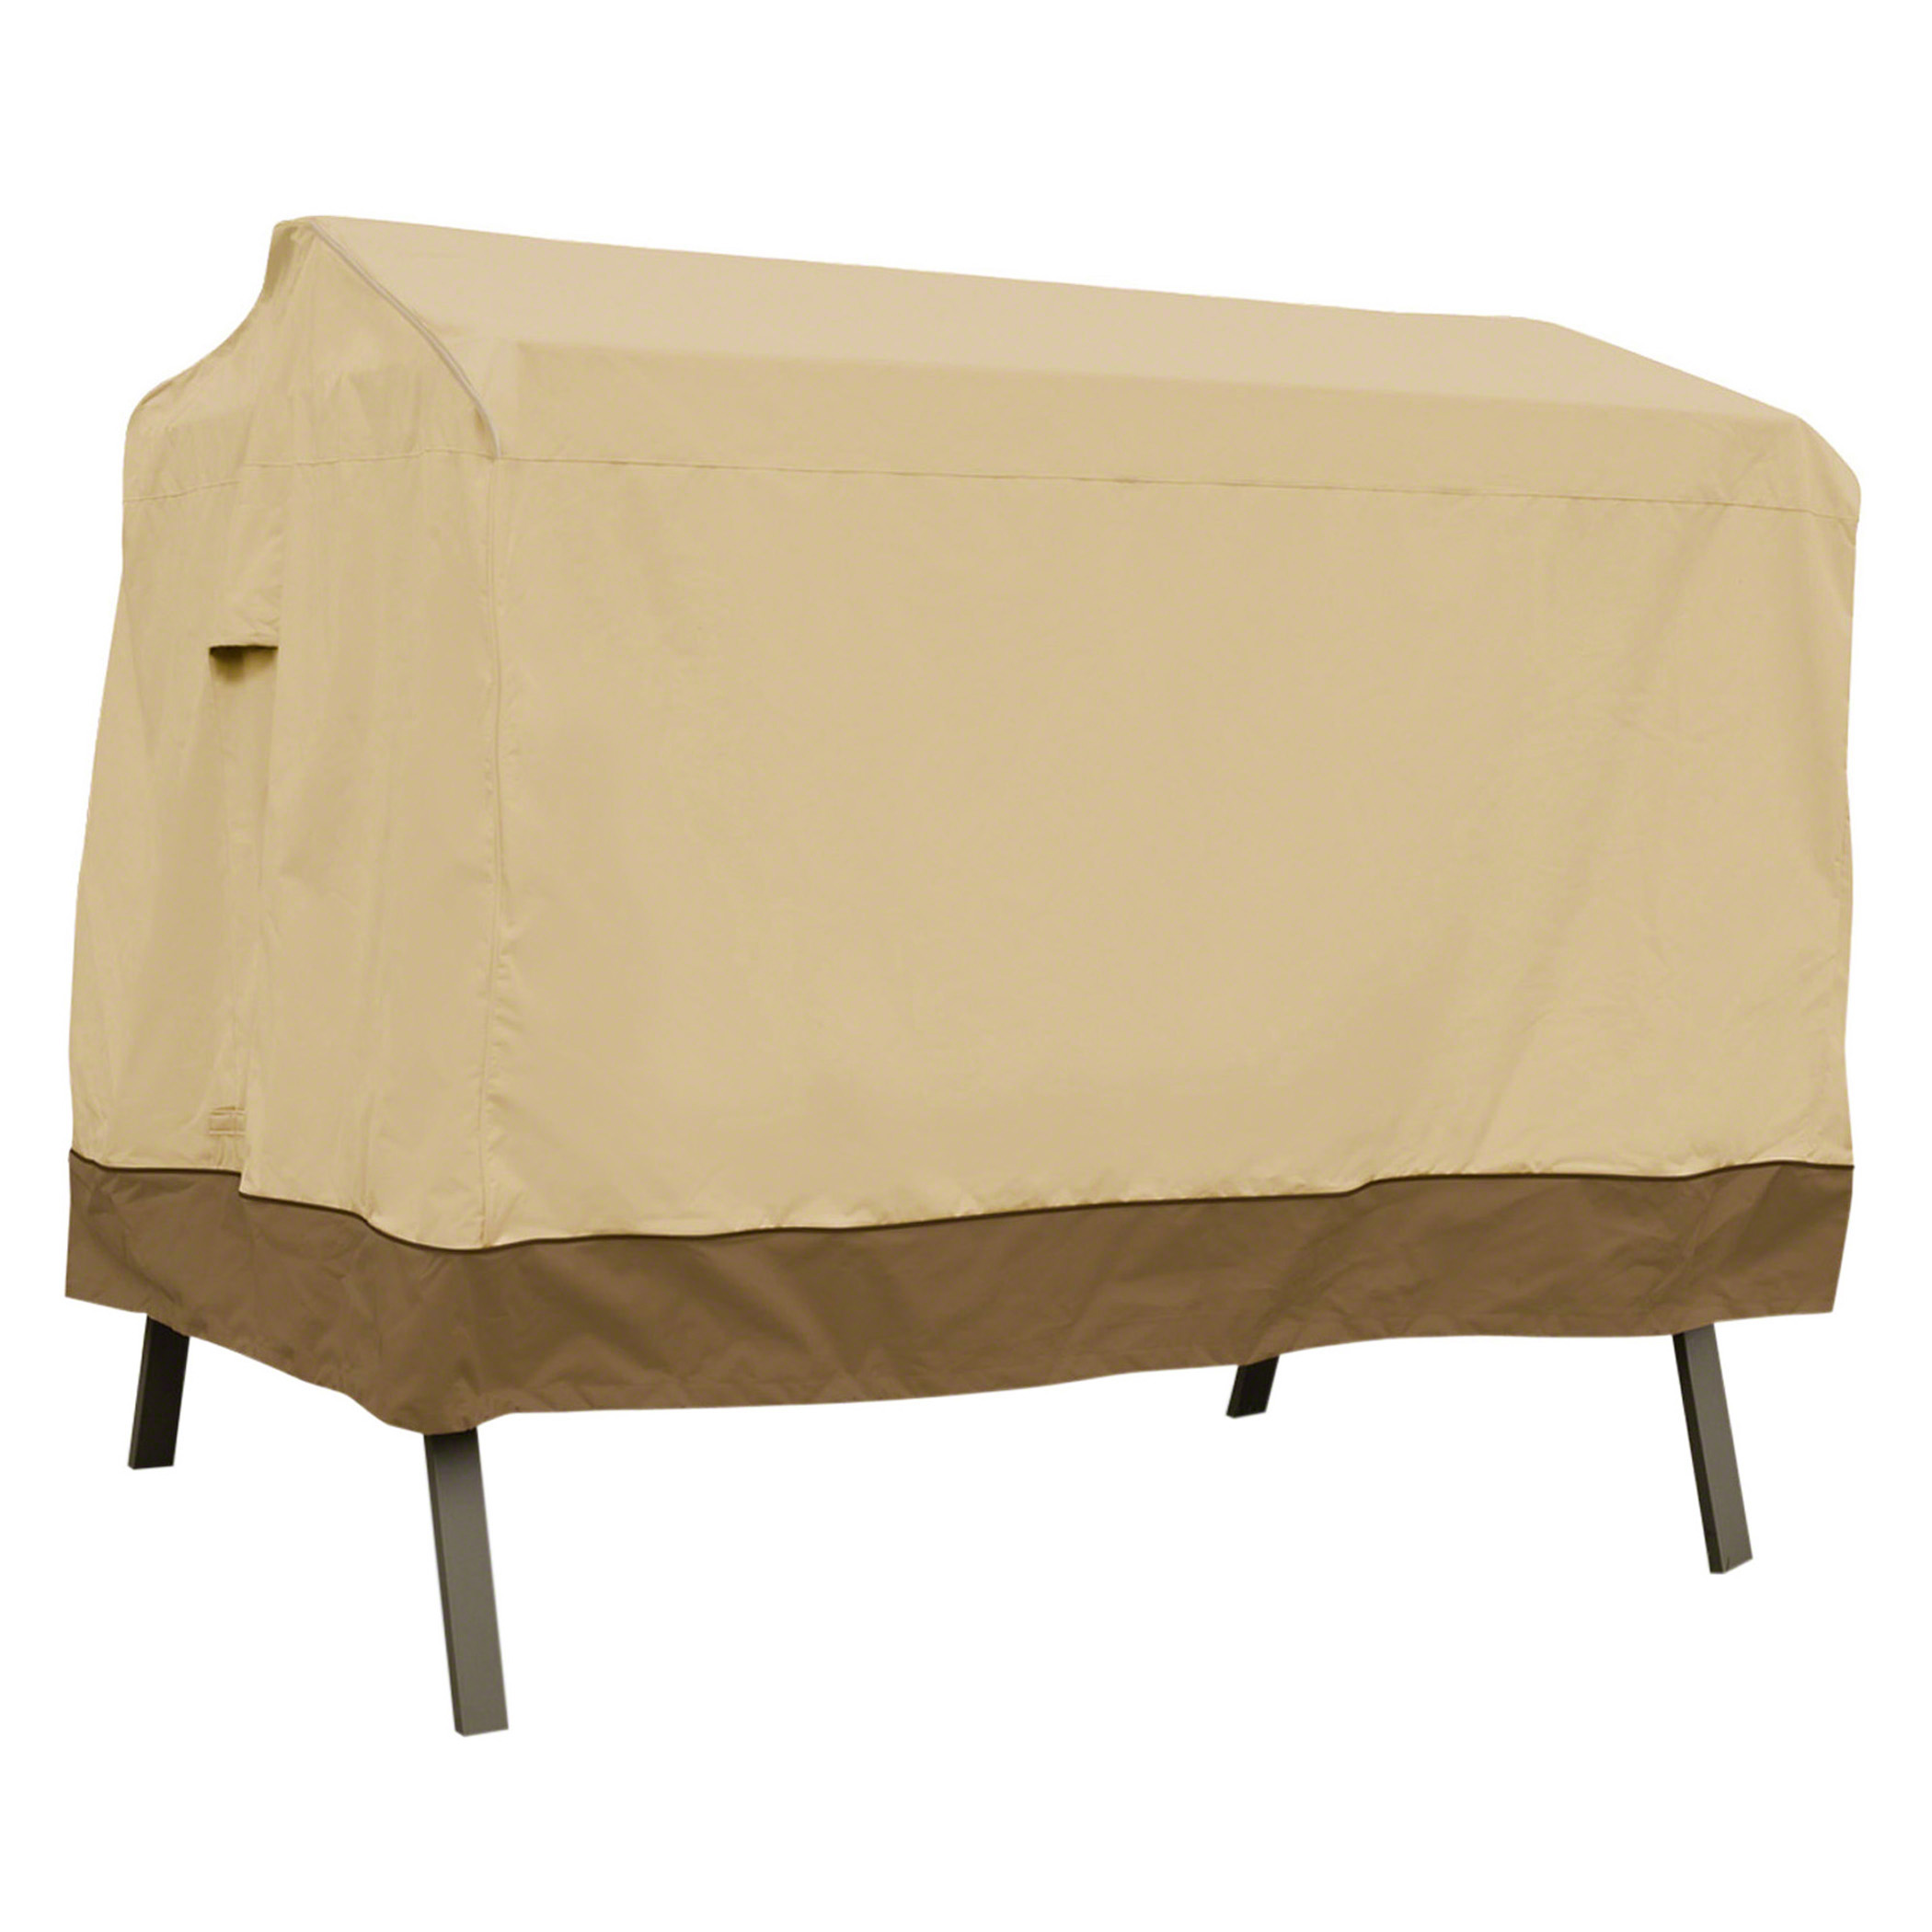 Classic Accessories Veranda™ Canopy Swing Cover - Durable and Water Resistant Outdoor Furniture Cover (72962)